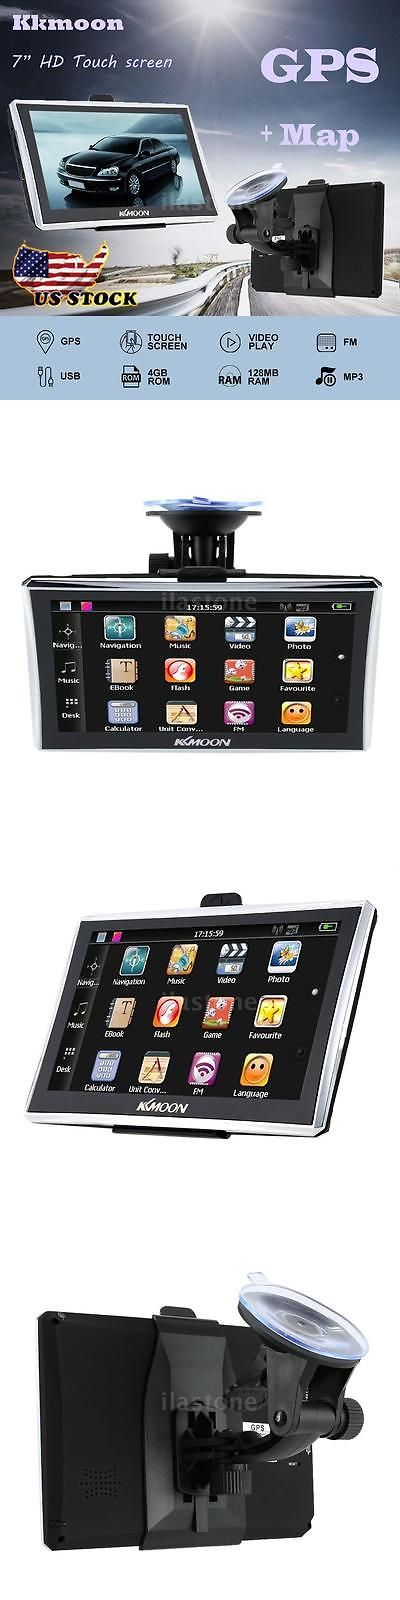 Vehicle Electronics And GPS: 7 Portable Hd Car Gps Navigation Touchscreen Fm Mp3 Video Play Usb Tf +Free Map -> BUY IT NOW ONLY: $31.39 on eBay!